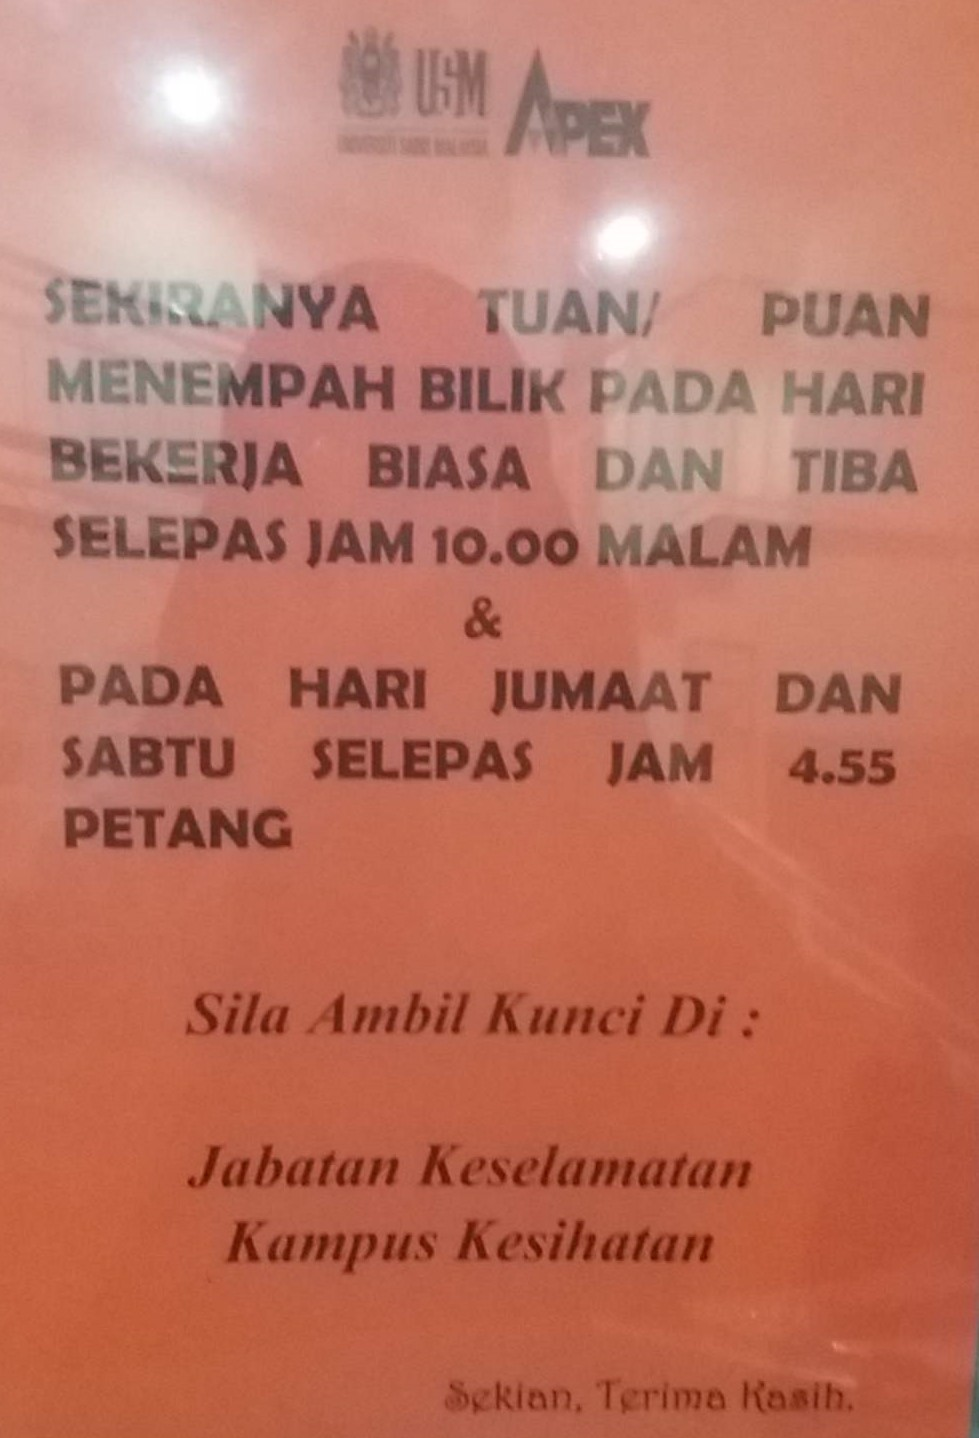 The Early Malay Doctors Rumah Tetamu Usm Kubang Kerian. Pro Signs. Roll Banners. Beauty Lettering Lettering. Batman Vs Superman Banners. Jumbo Murals. Restaurant Lettering. Loneliness Signs Of Stroke. Fountain Decals